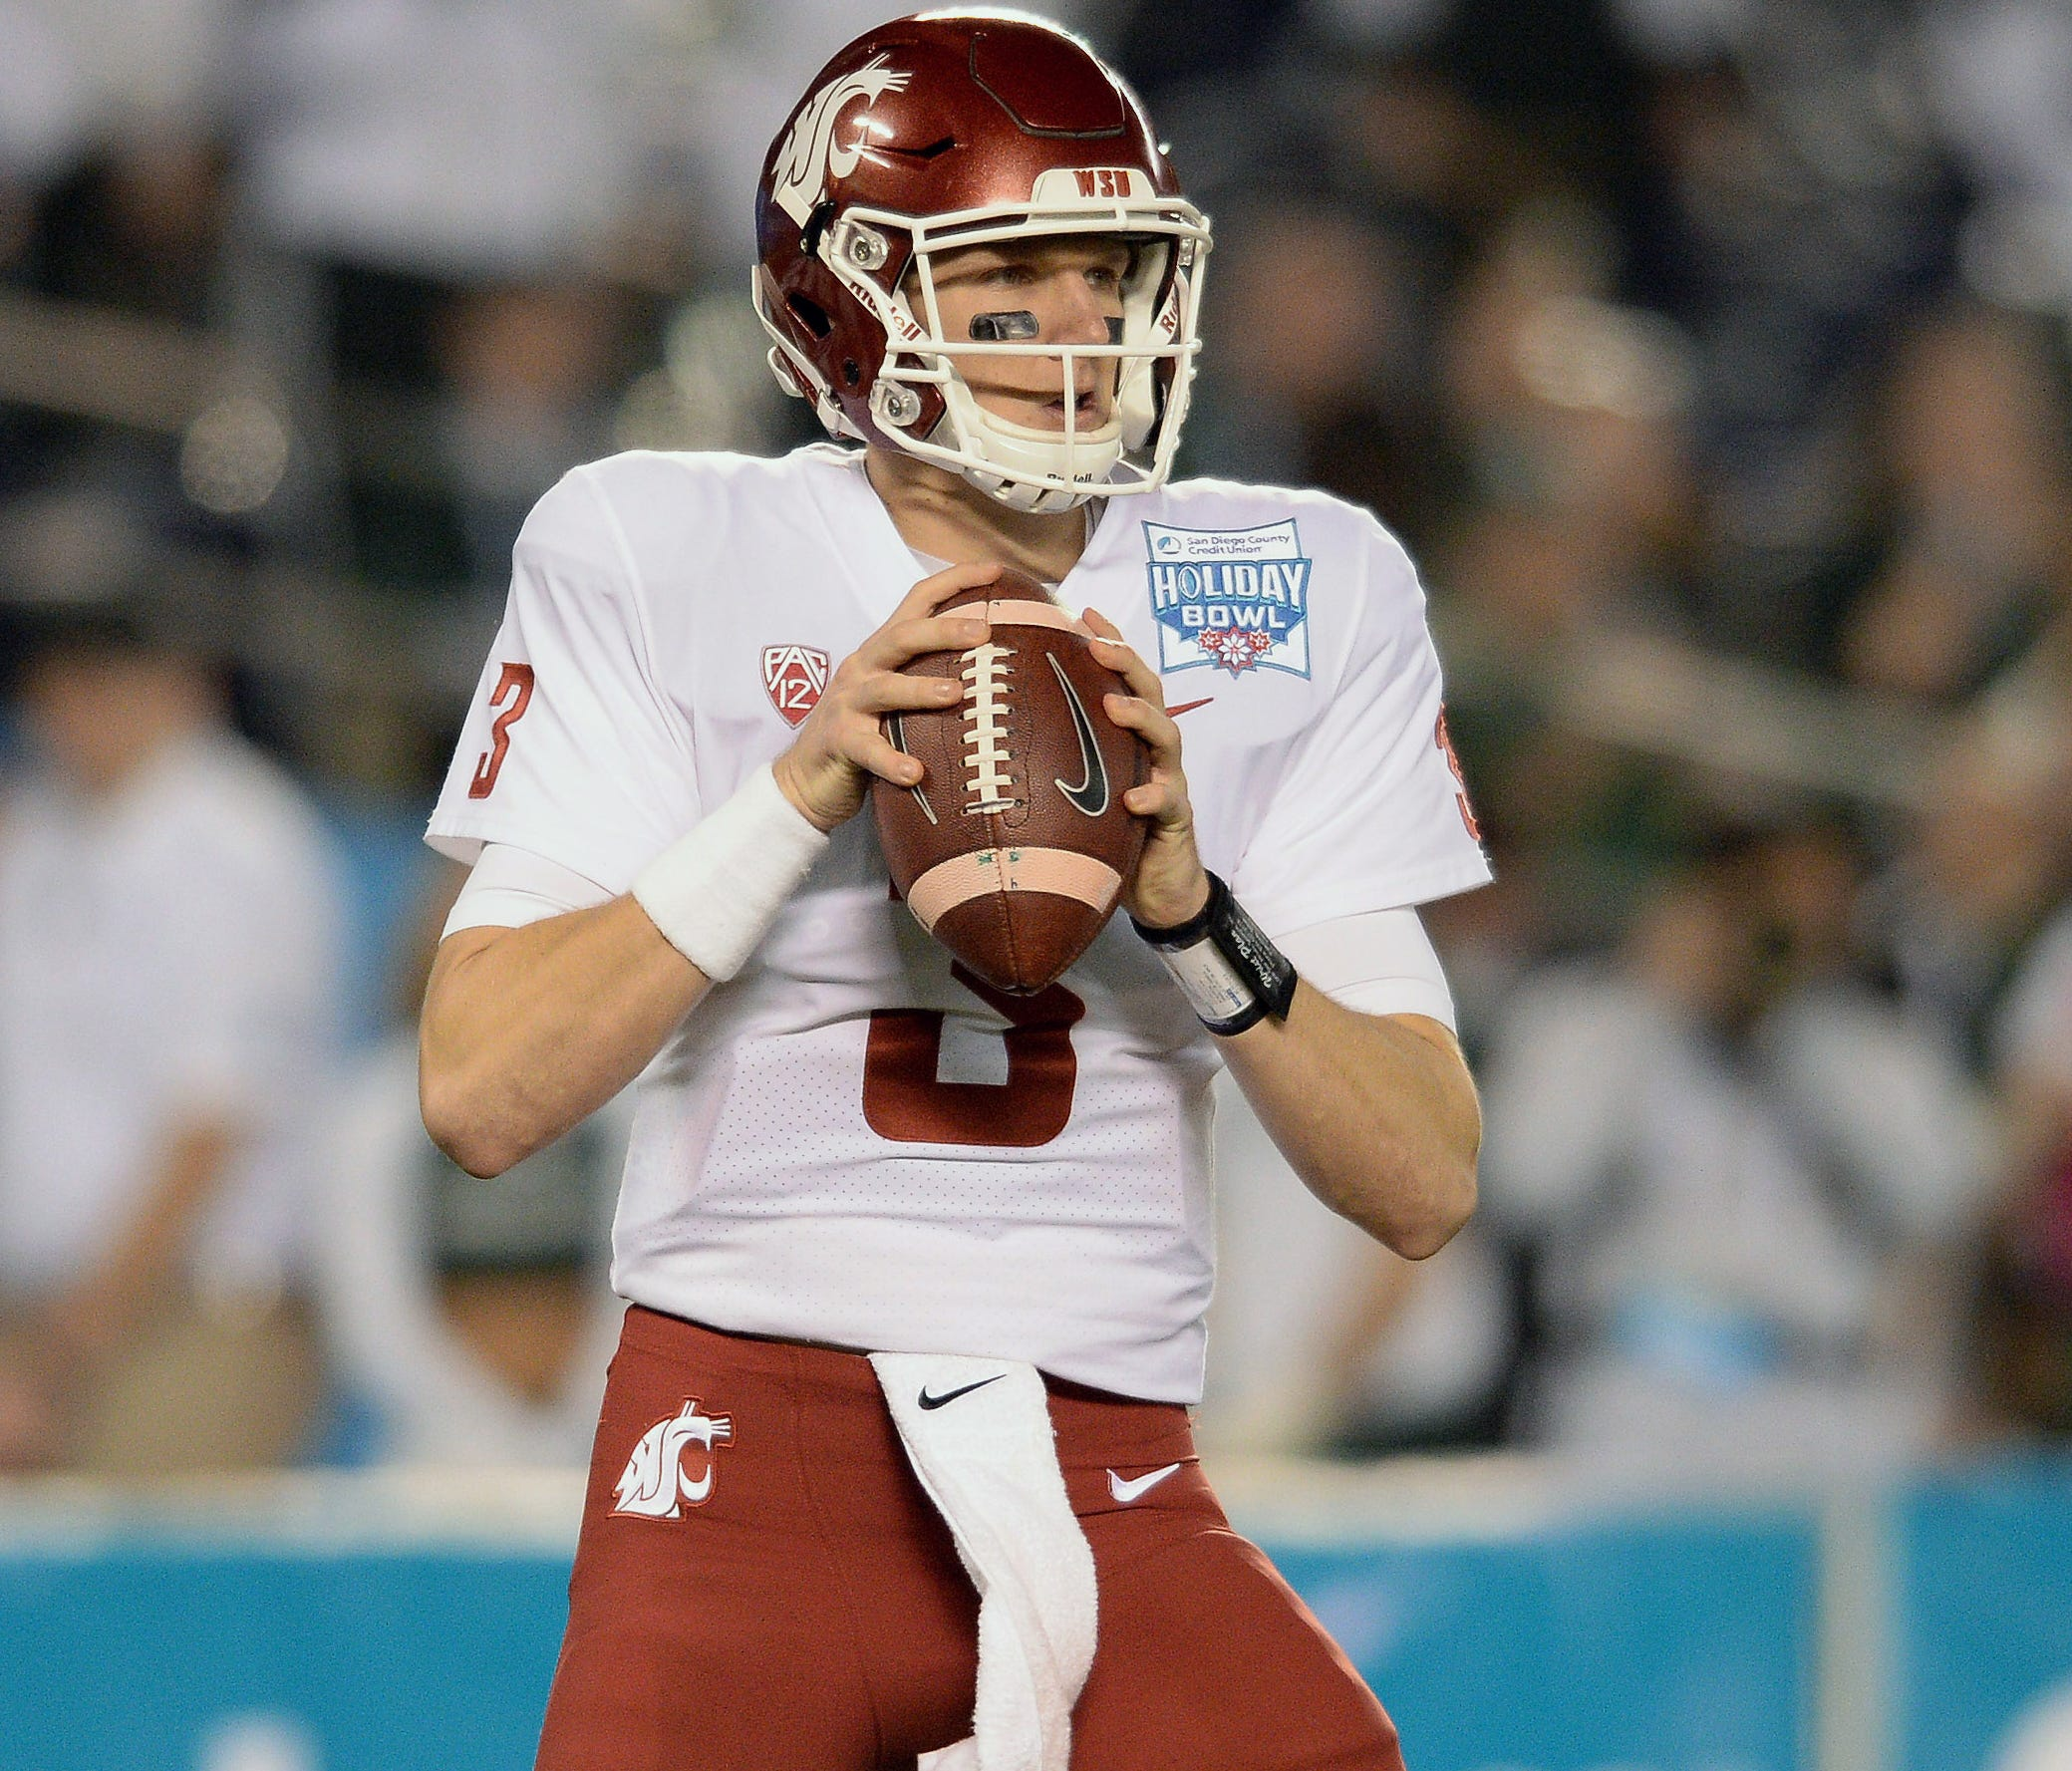 Former Washington State quarterback Tyler Hilinski looks to pass during the first quarter against Michigan State in the Holiday Bowl at SDCCU Stadium in San Diego on Dec. 28, 2017.